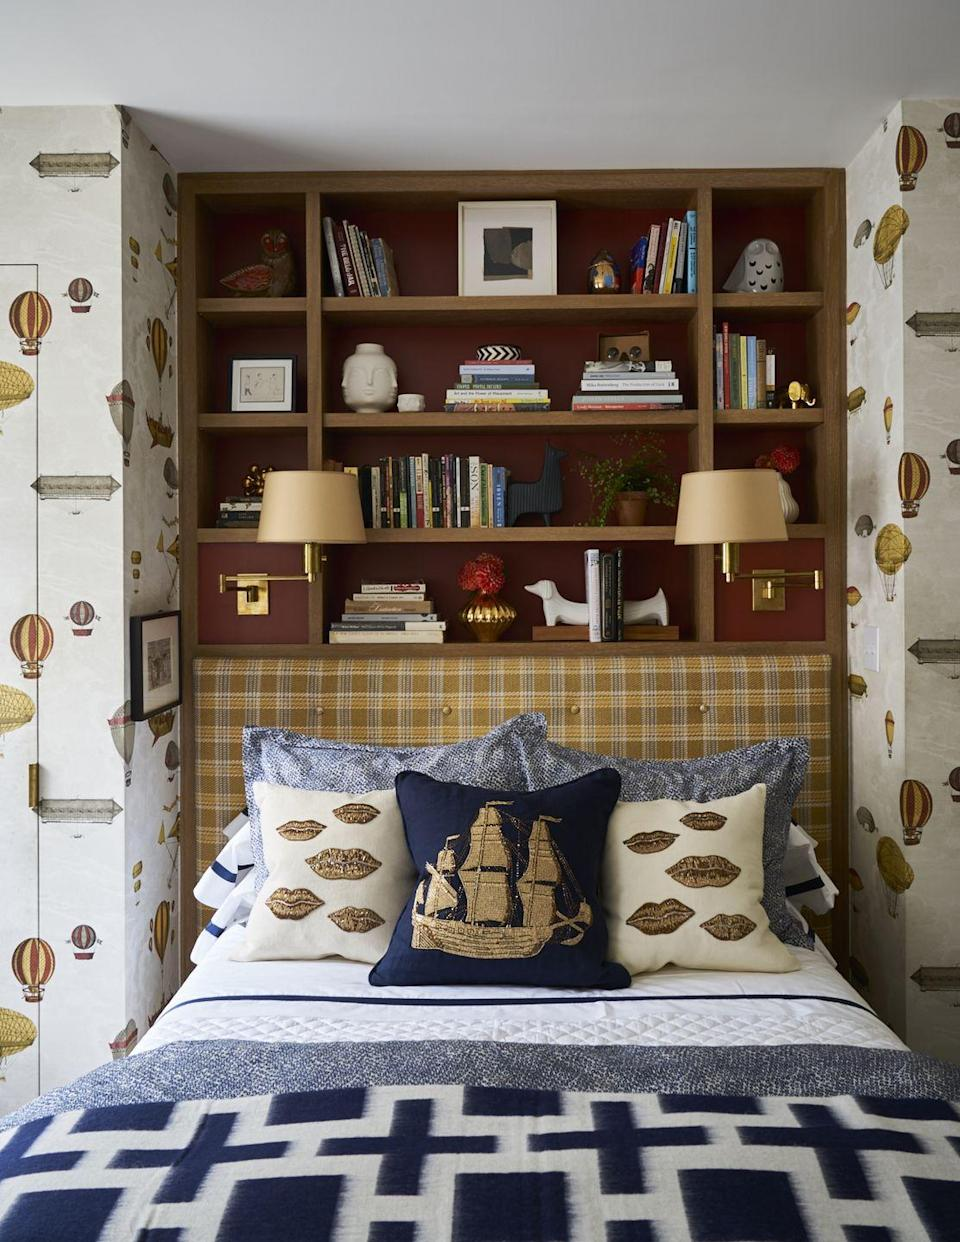 """<p>This bedroom by designer <a href=""""http://www.katielydoninteriors.com/"""" rel=""""nofollow noopener"""" target=""""_blank"""" data-ylk=""""slk:Katie Lyndon"""" class=""""link rapid-noclick-resp"""">Katie Lyndon</a> is the perfect example of how to decorate a space that can grow with a person. It has smart storage solutions with playful yet grown-up decor on display, a neutral color palette brought to life with fun prints and motifs, and high-quality bedding. For a similar feel, try mixing bold prints within a tight color scheme and make sure the details are polished—like these traditional sconces. </p>"""